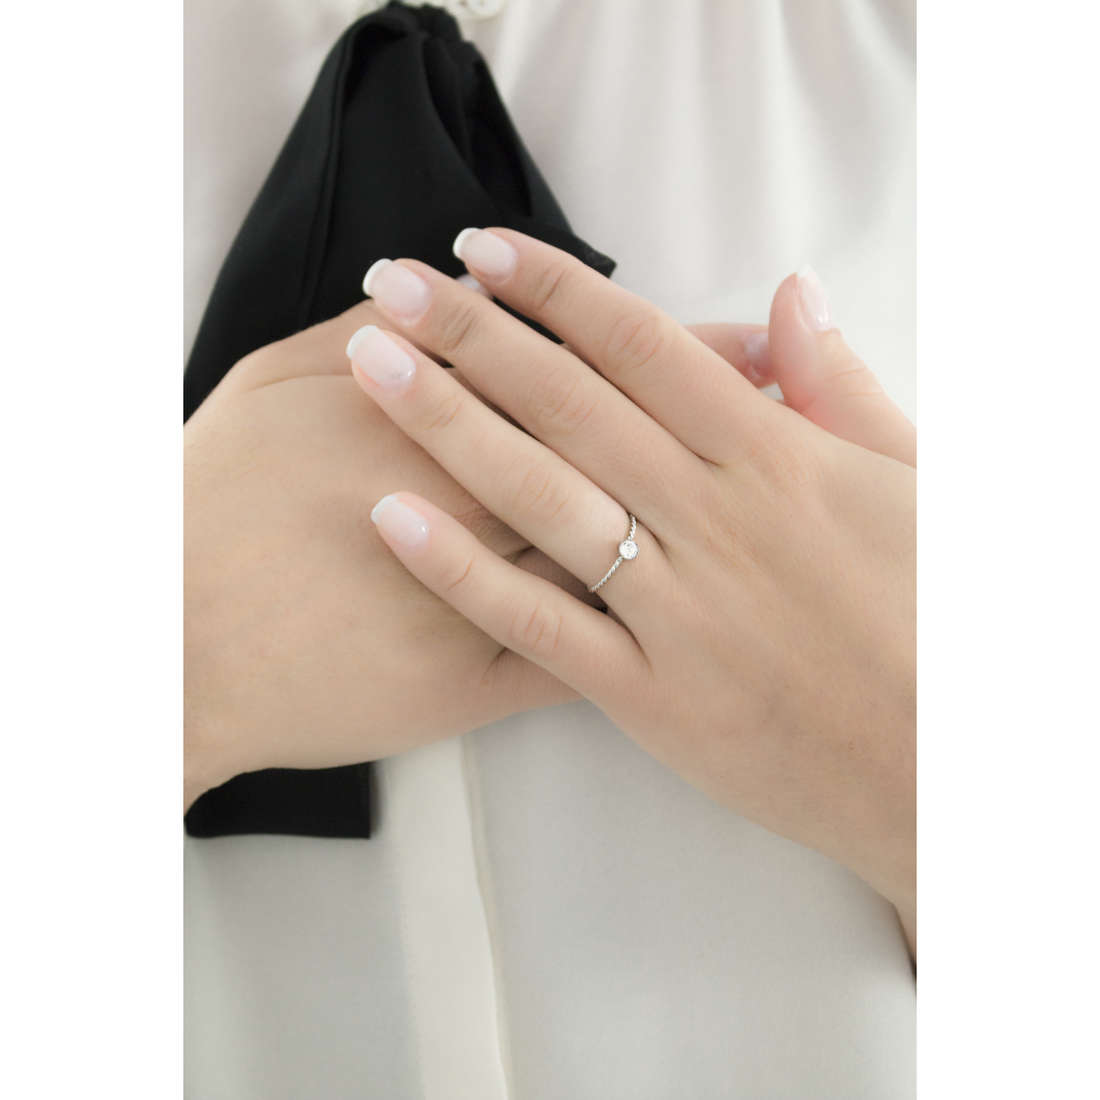 Marlù rings Time To woman 18AN047W-S indosso